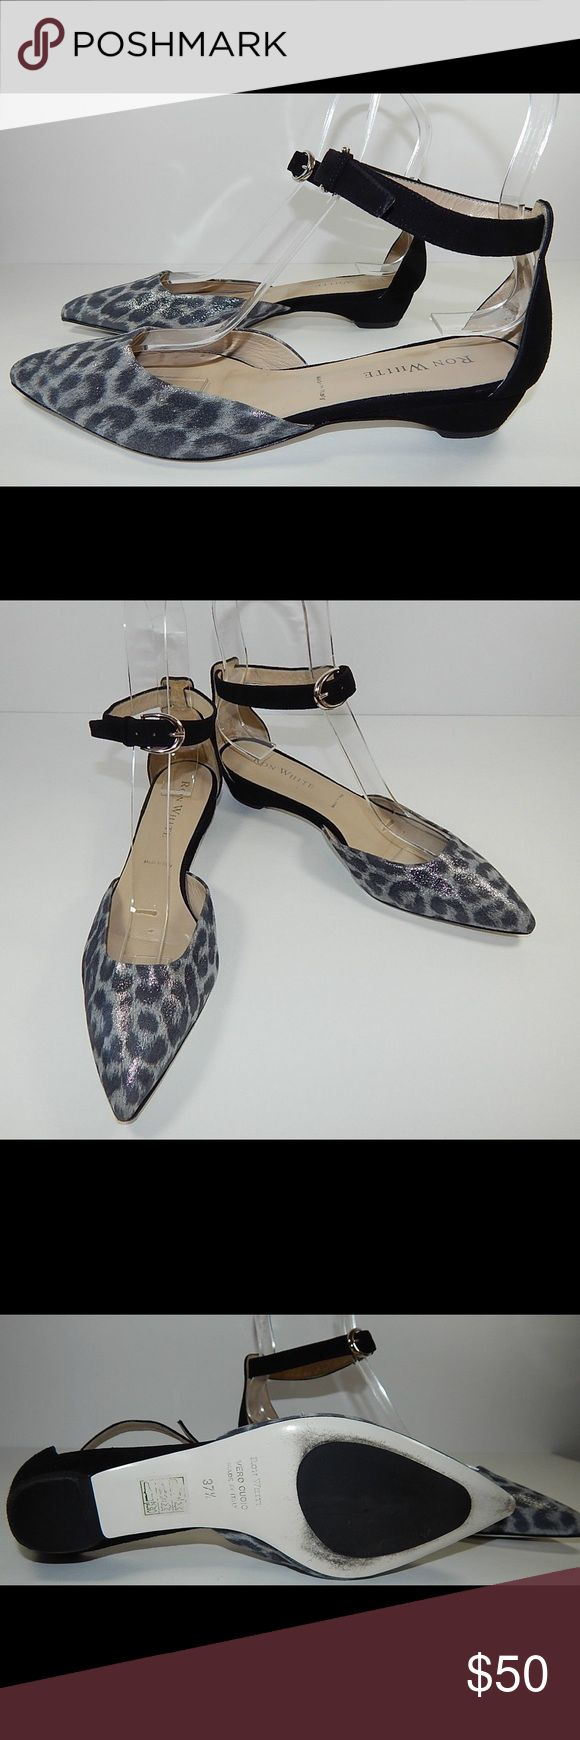 Ron White leather wedge leopard flats shoes 7/7.5 Ron White Mary Jane style flat sandals. Size 37.5 or 7-7.5 in US. Worn once, light use, see pictures. Ron White Shoes Flats & Loafers